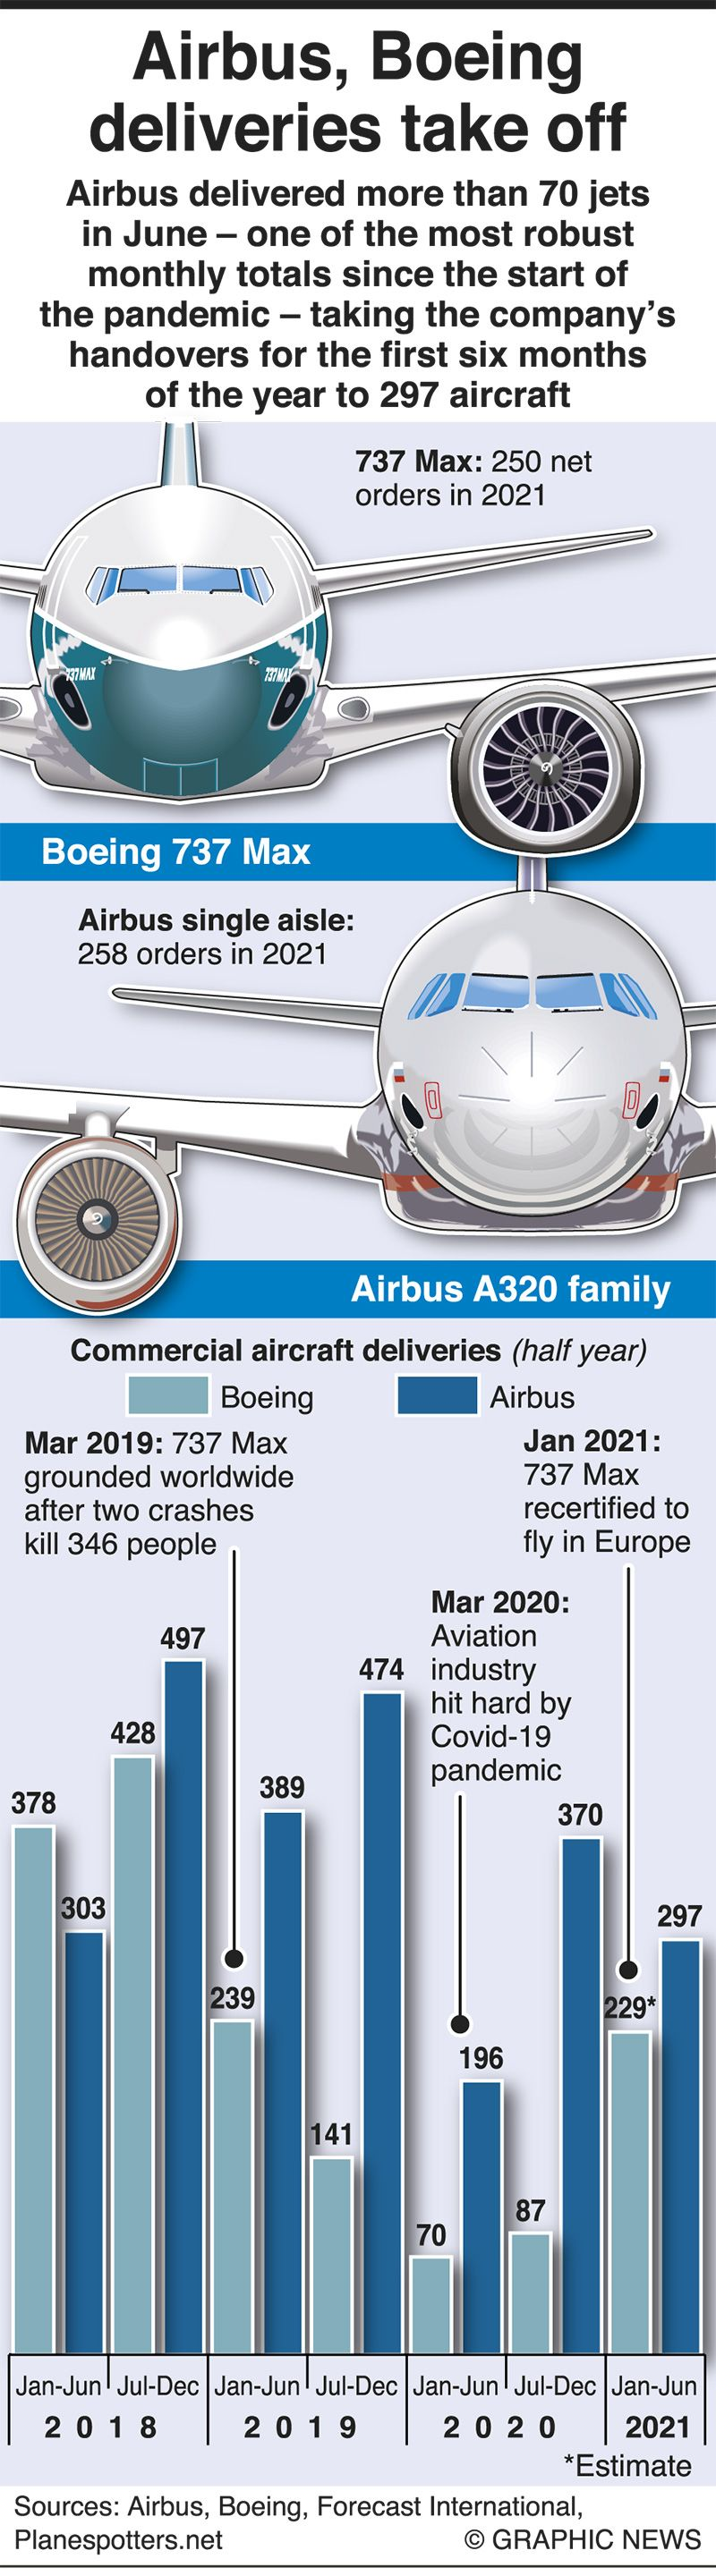 Infographics: Boeing, Airbus deliveries take off